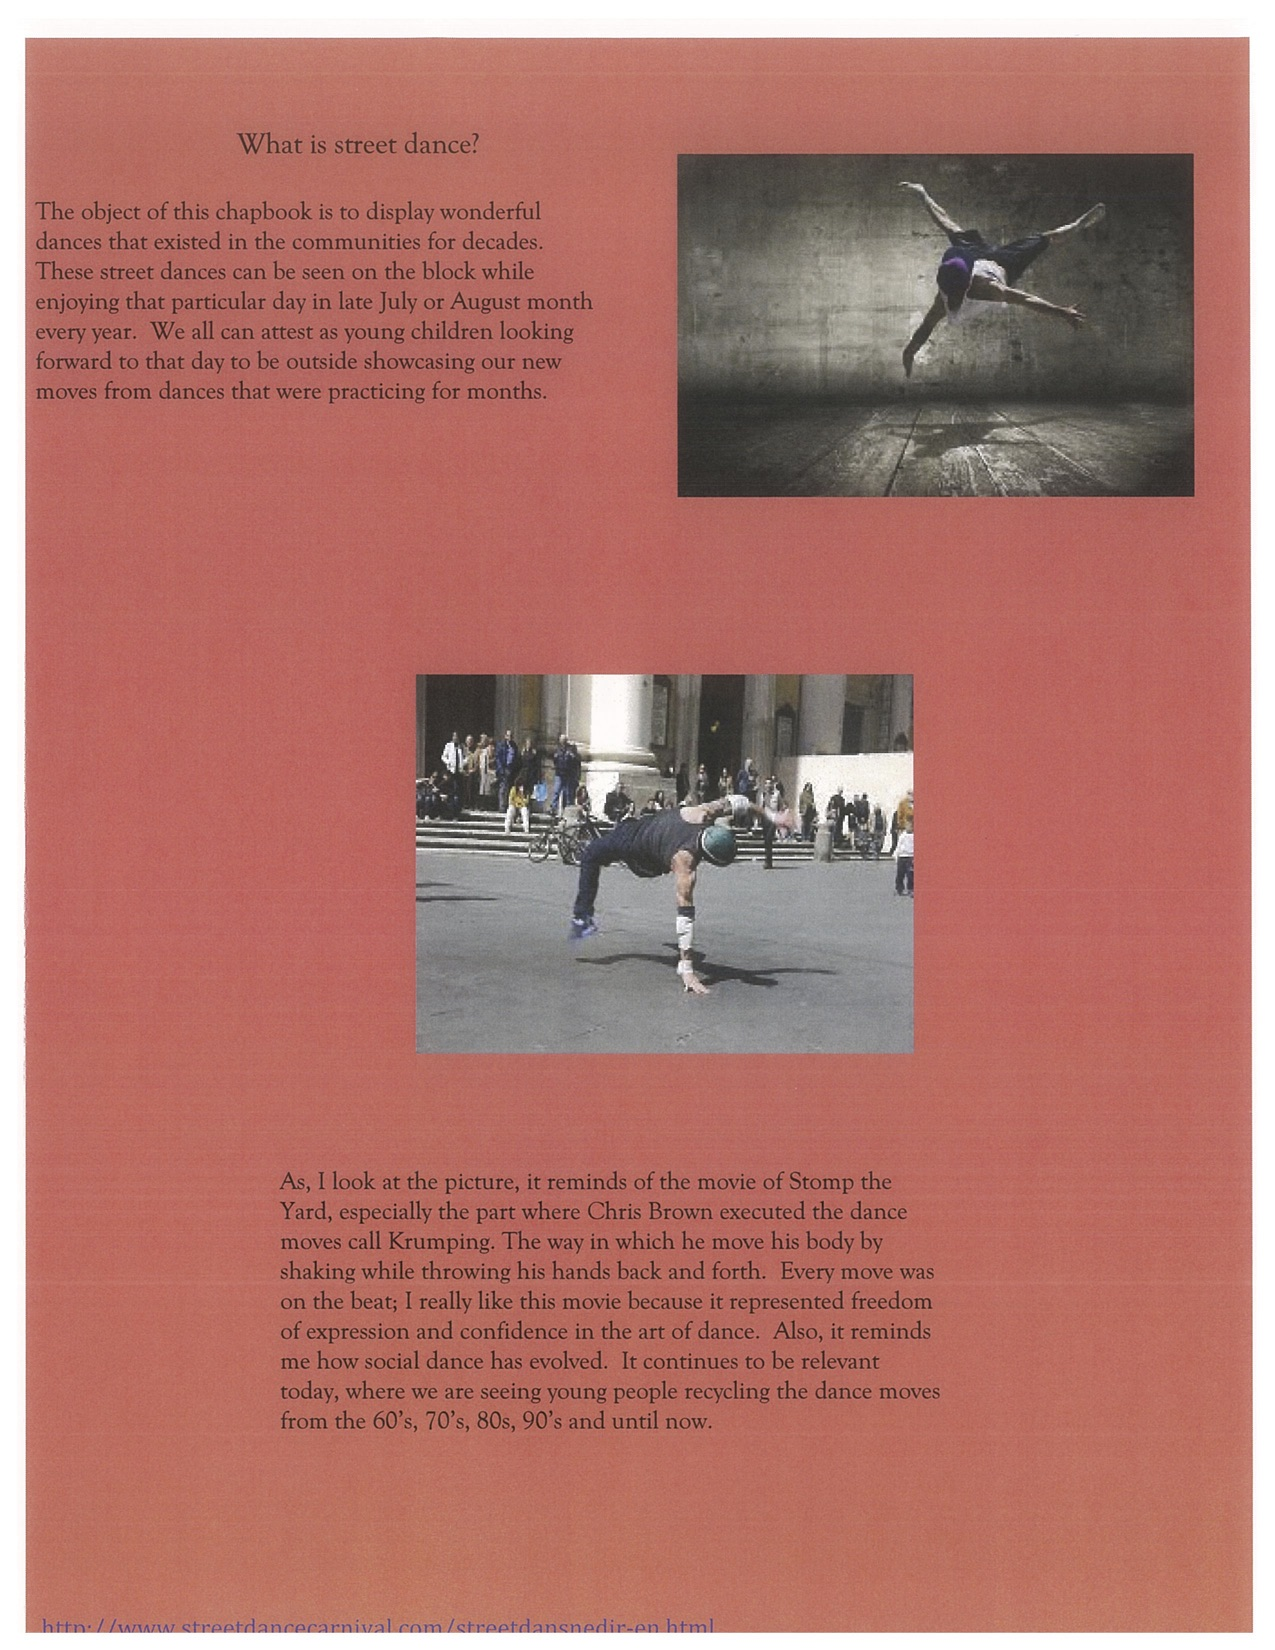 Page 1. displays some History of Street Dance.